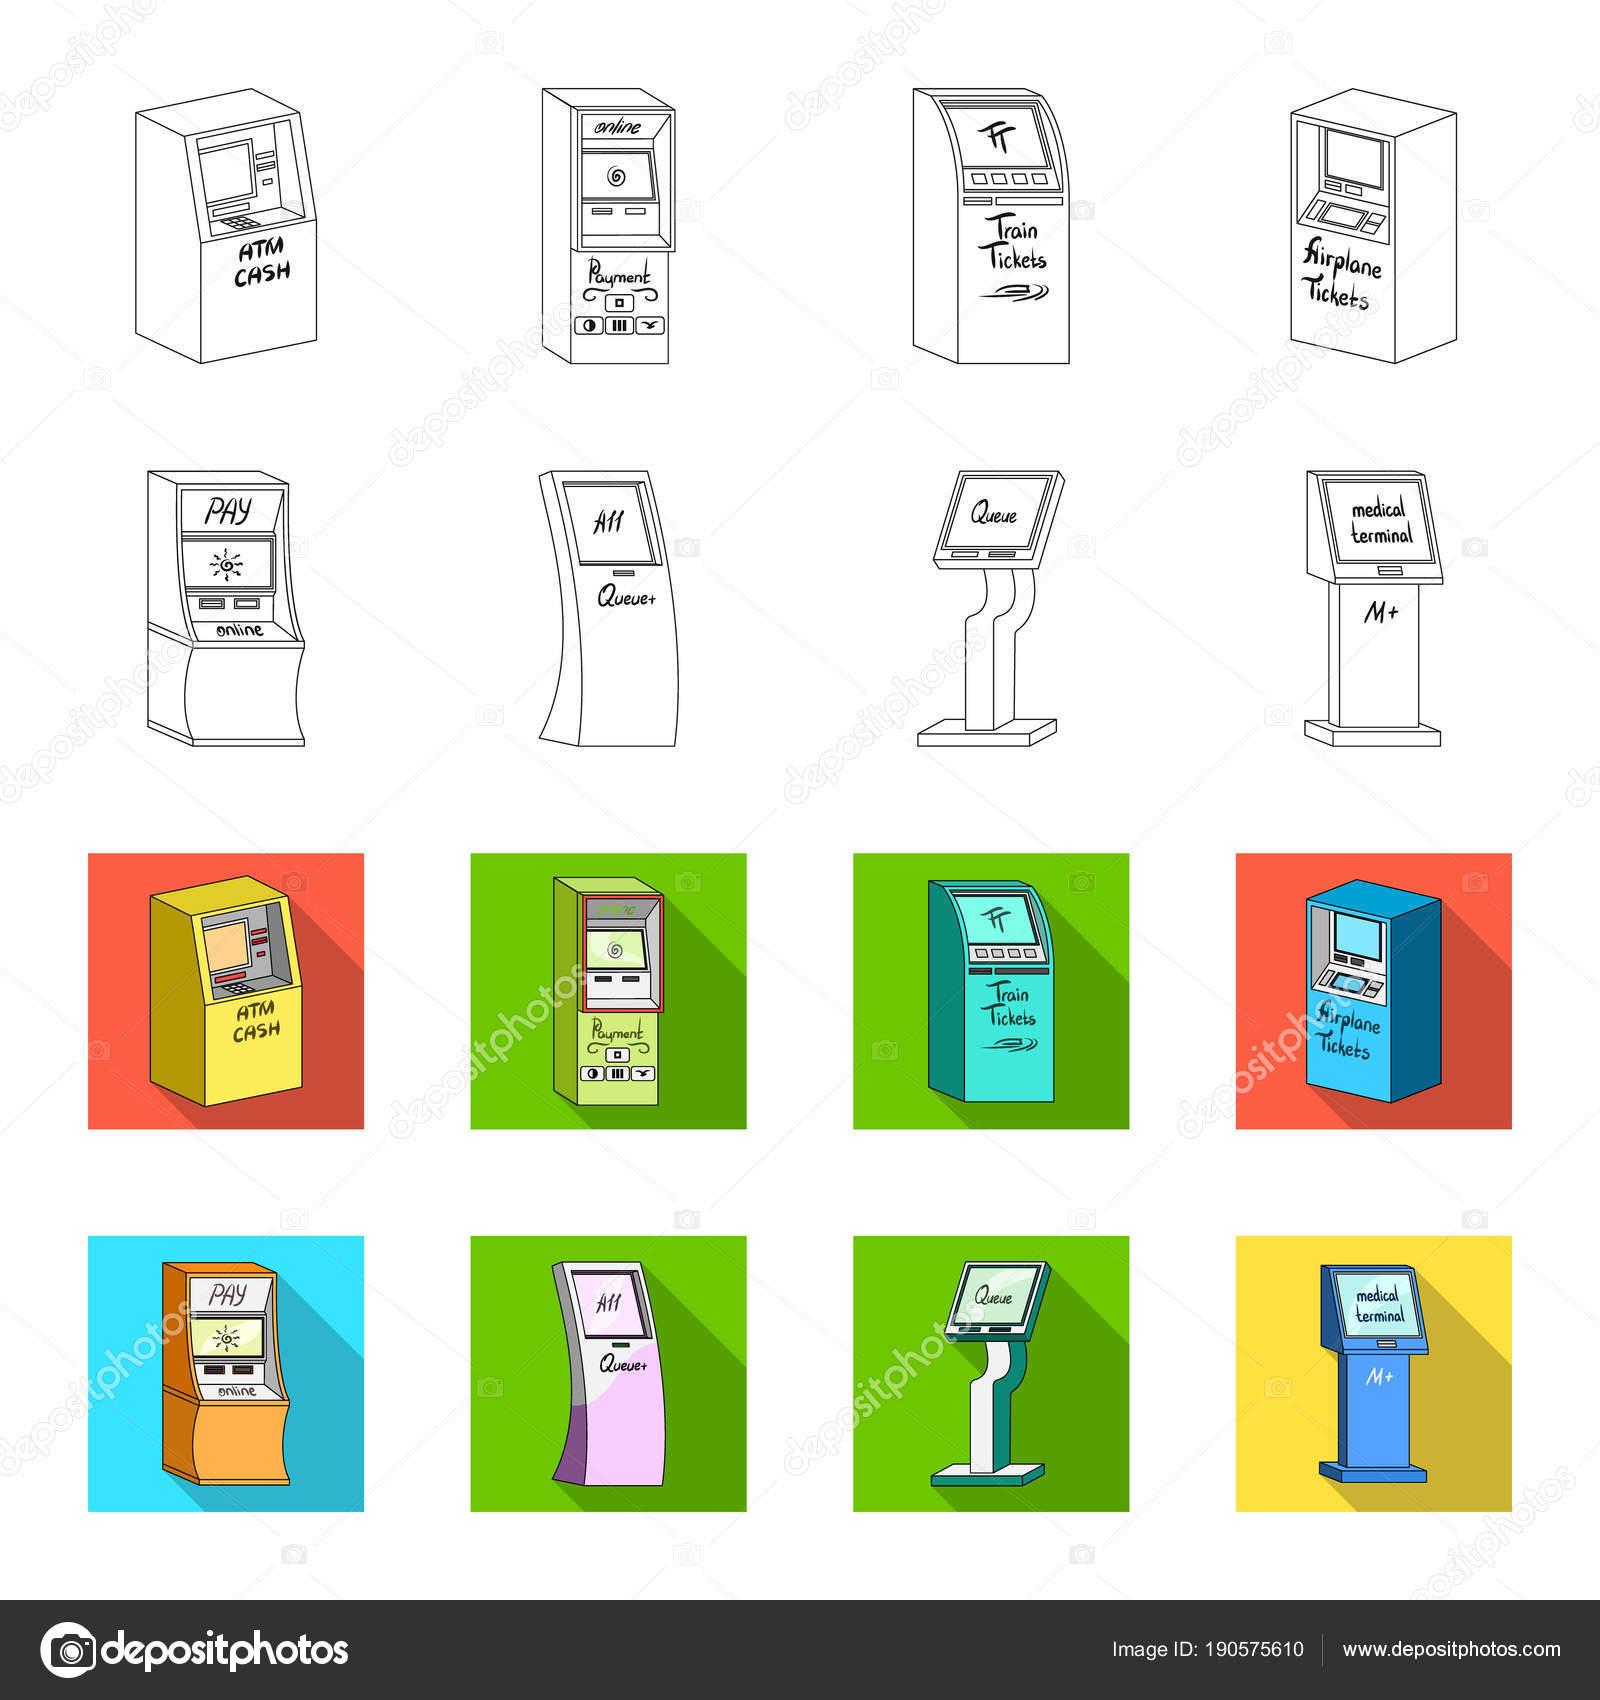 Medical terminal atm for paymentapparatus for queue terminals set medical terminal atm for paymentapparatus for queue terminals set collection icons in outlineflet style isometric vector symbol stock illustration ccuart Images